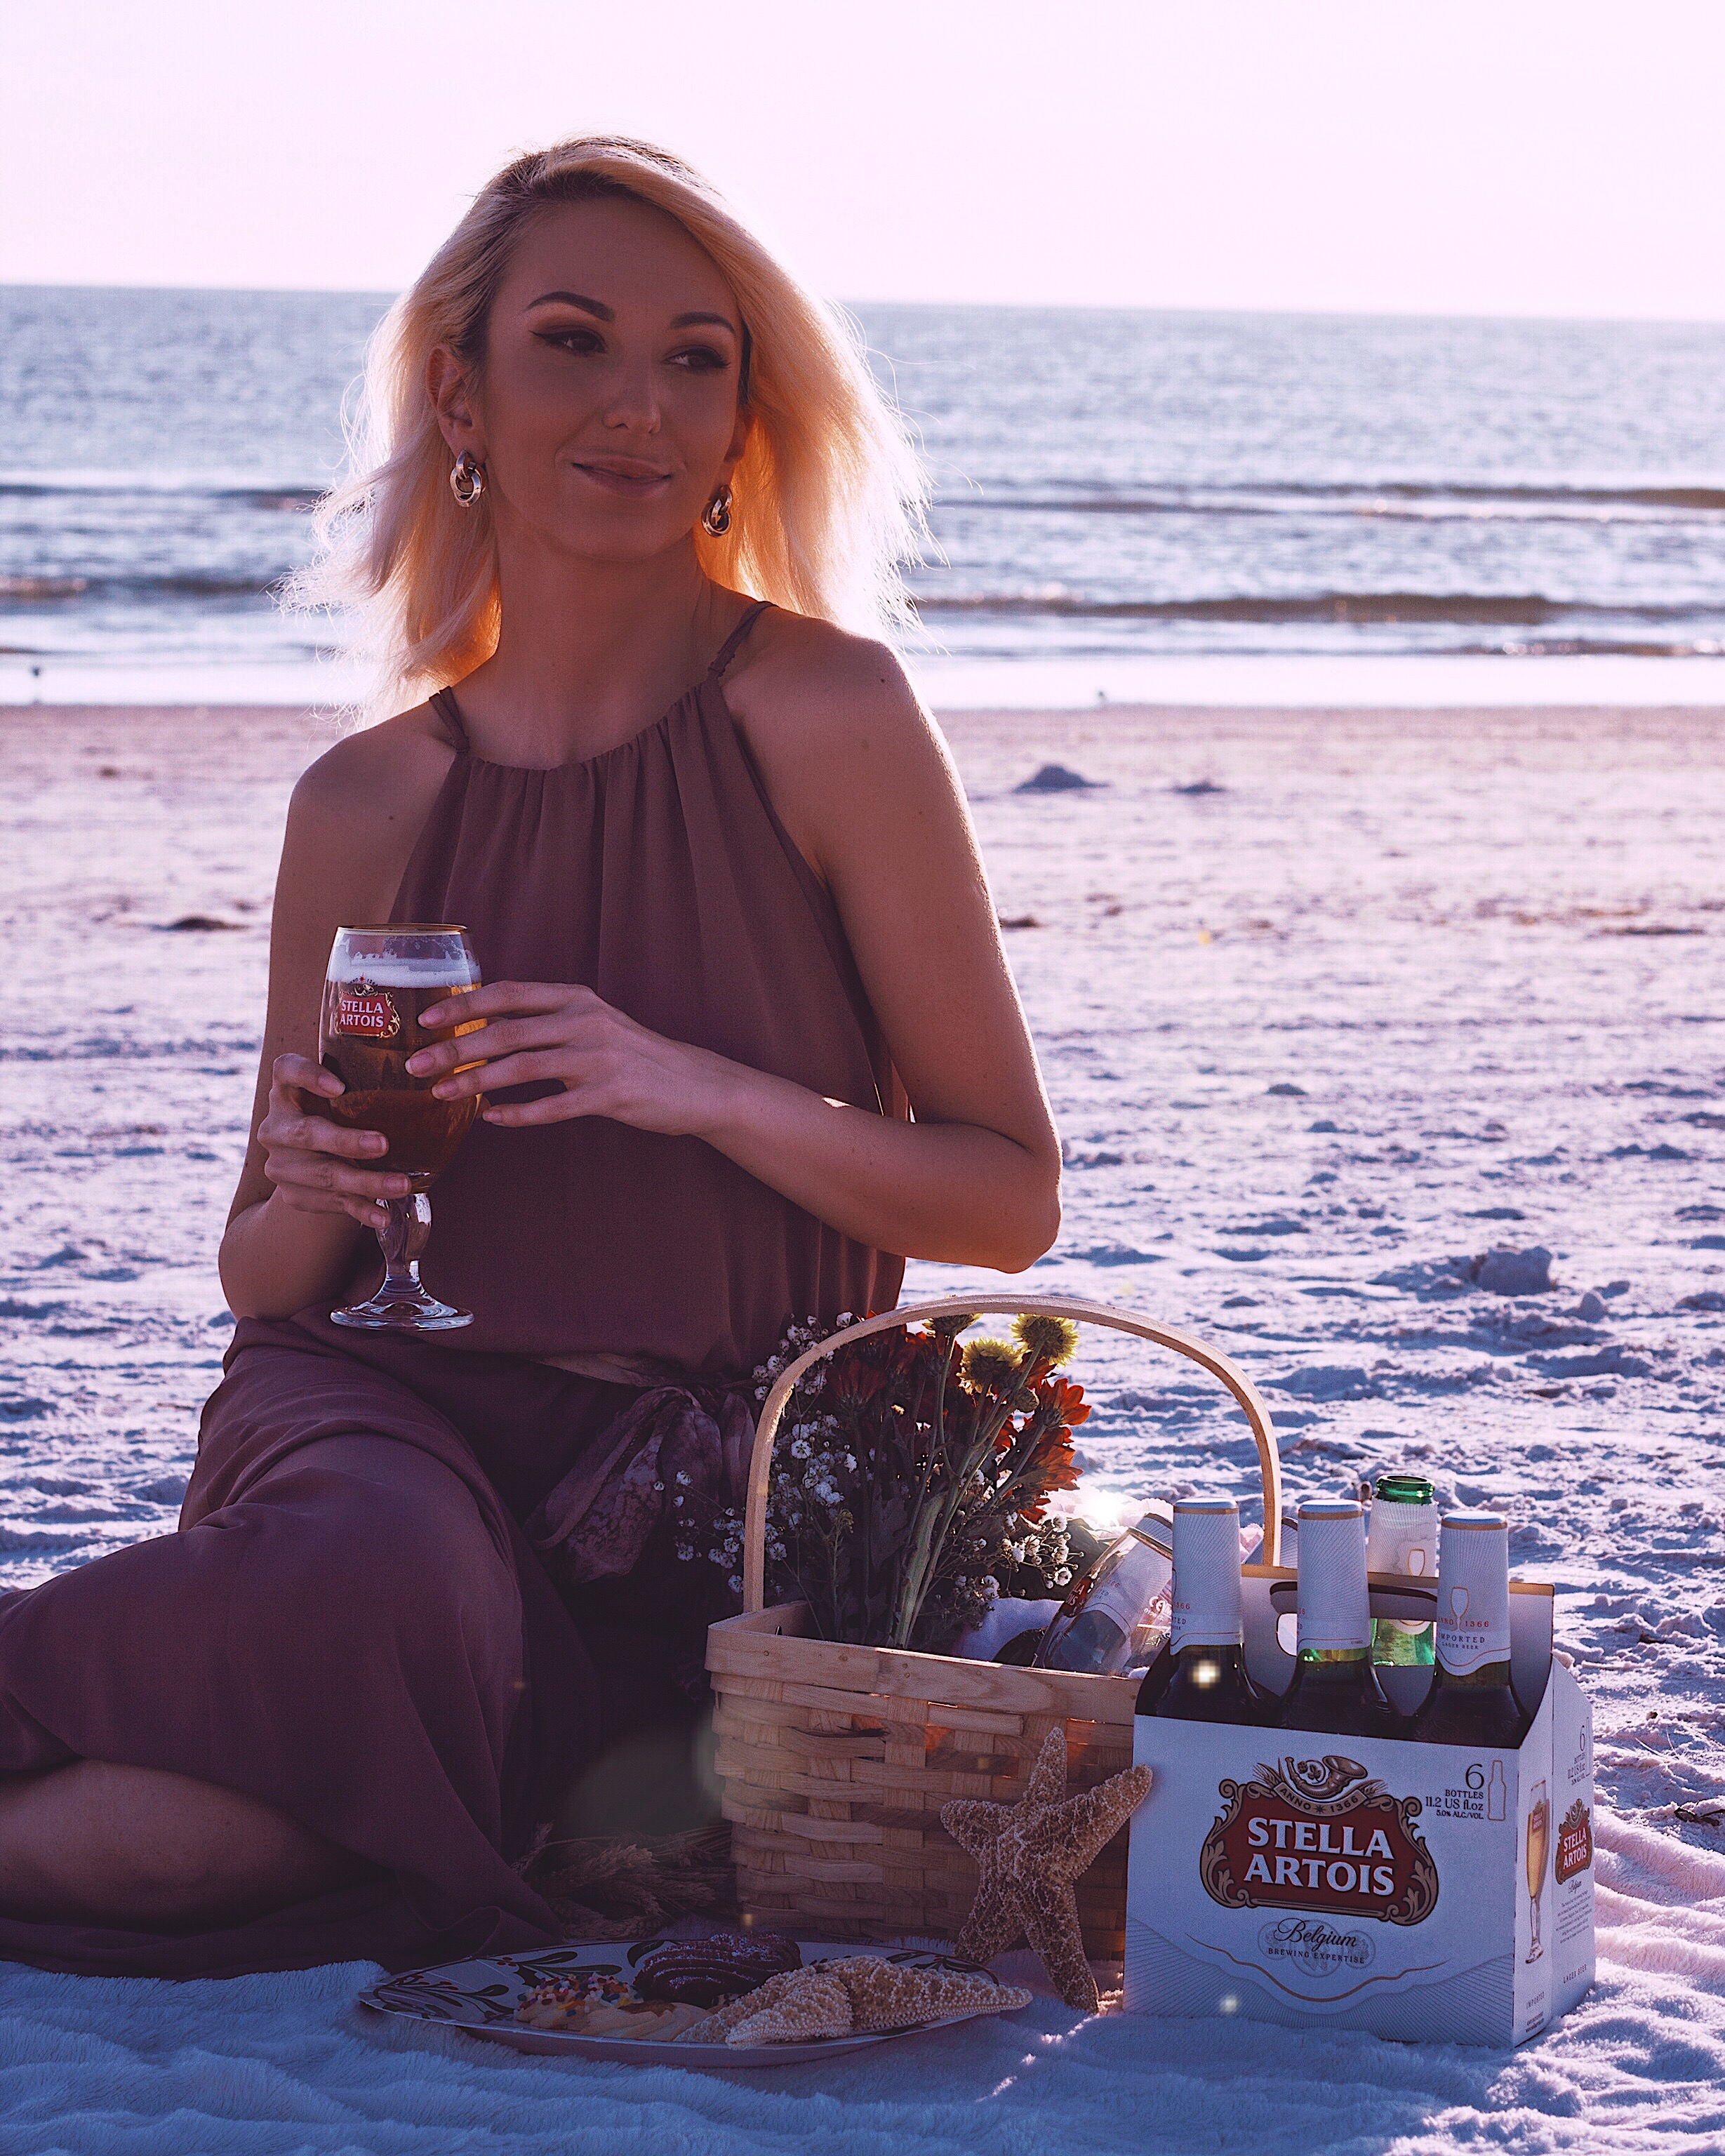 The perfect picnic with Stella Artois